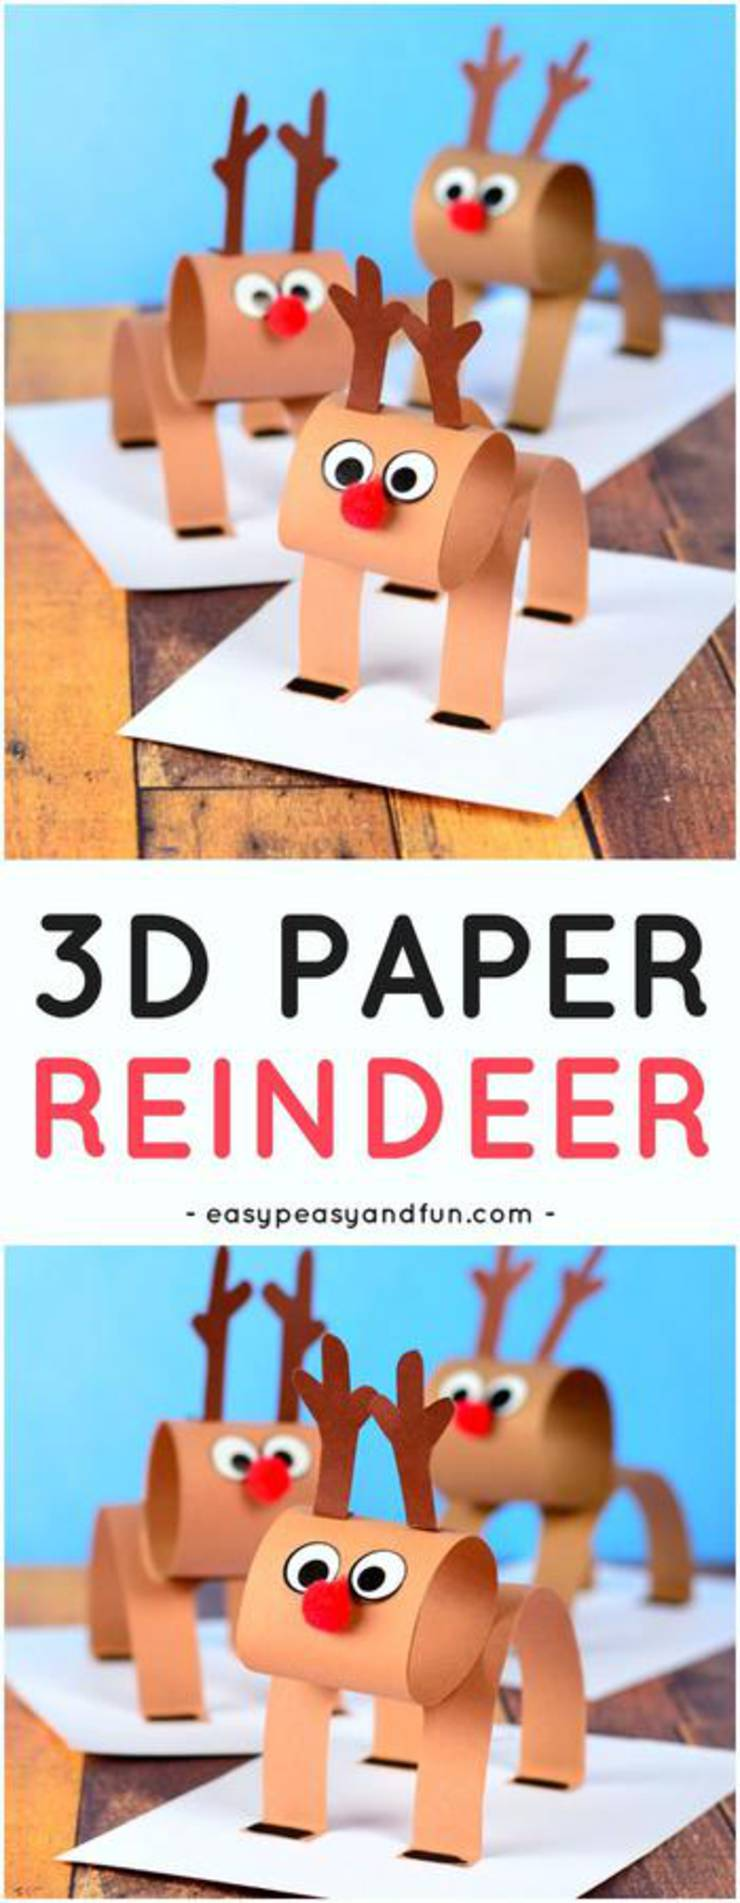 3D Construction Paper Reindeer